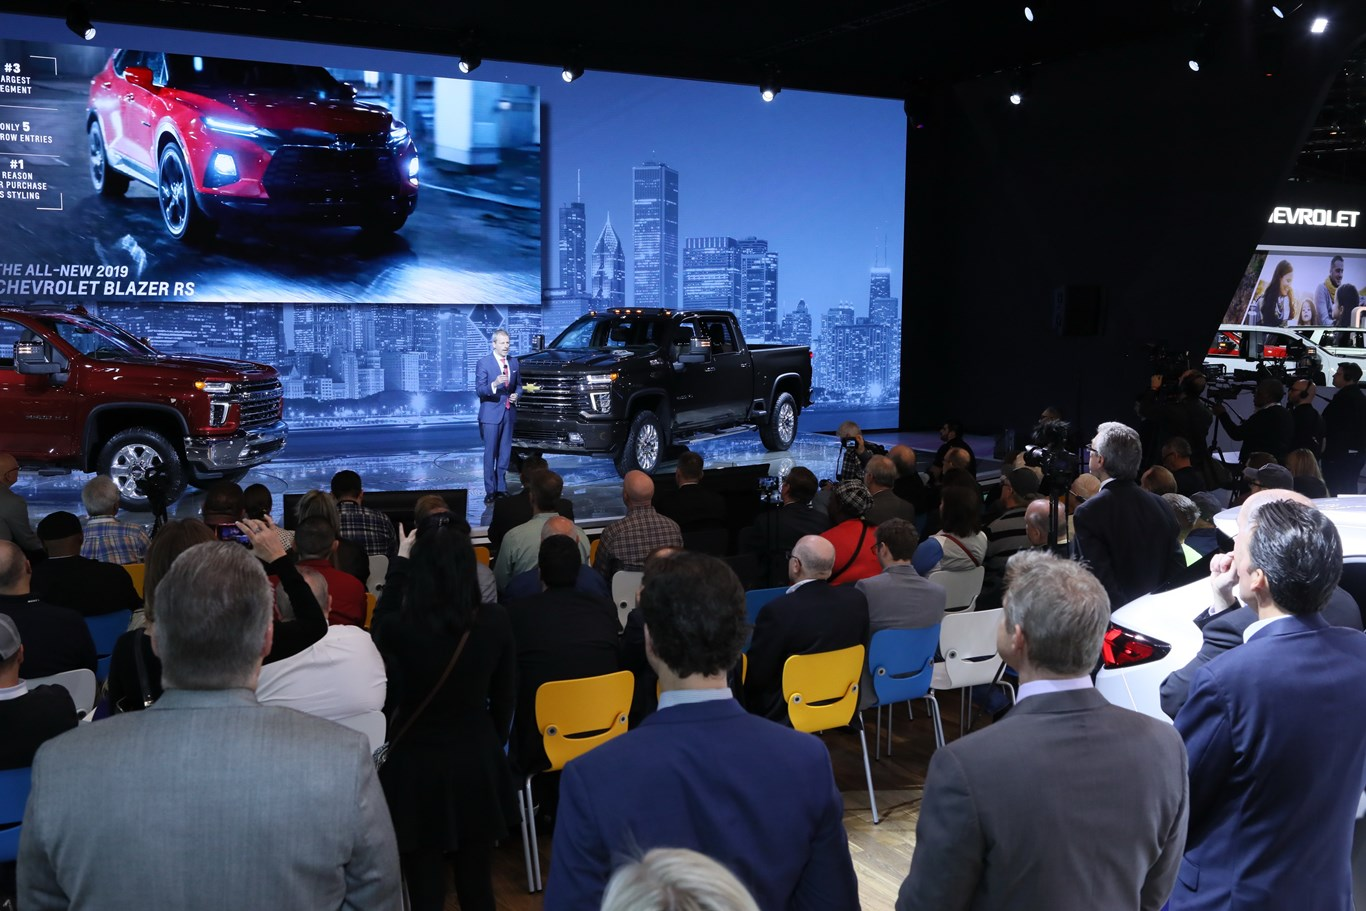 2019 Chevrolet News Conference Chicago Auto Show